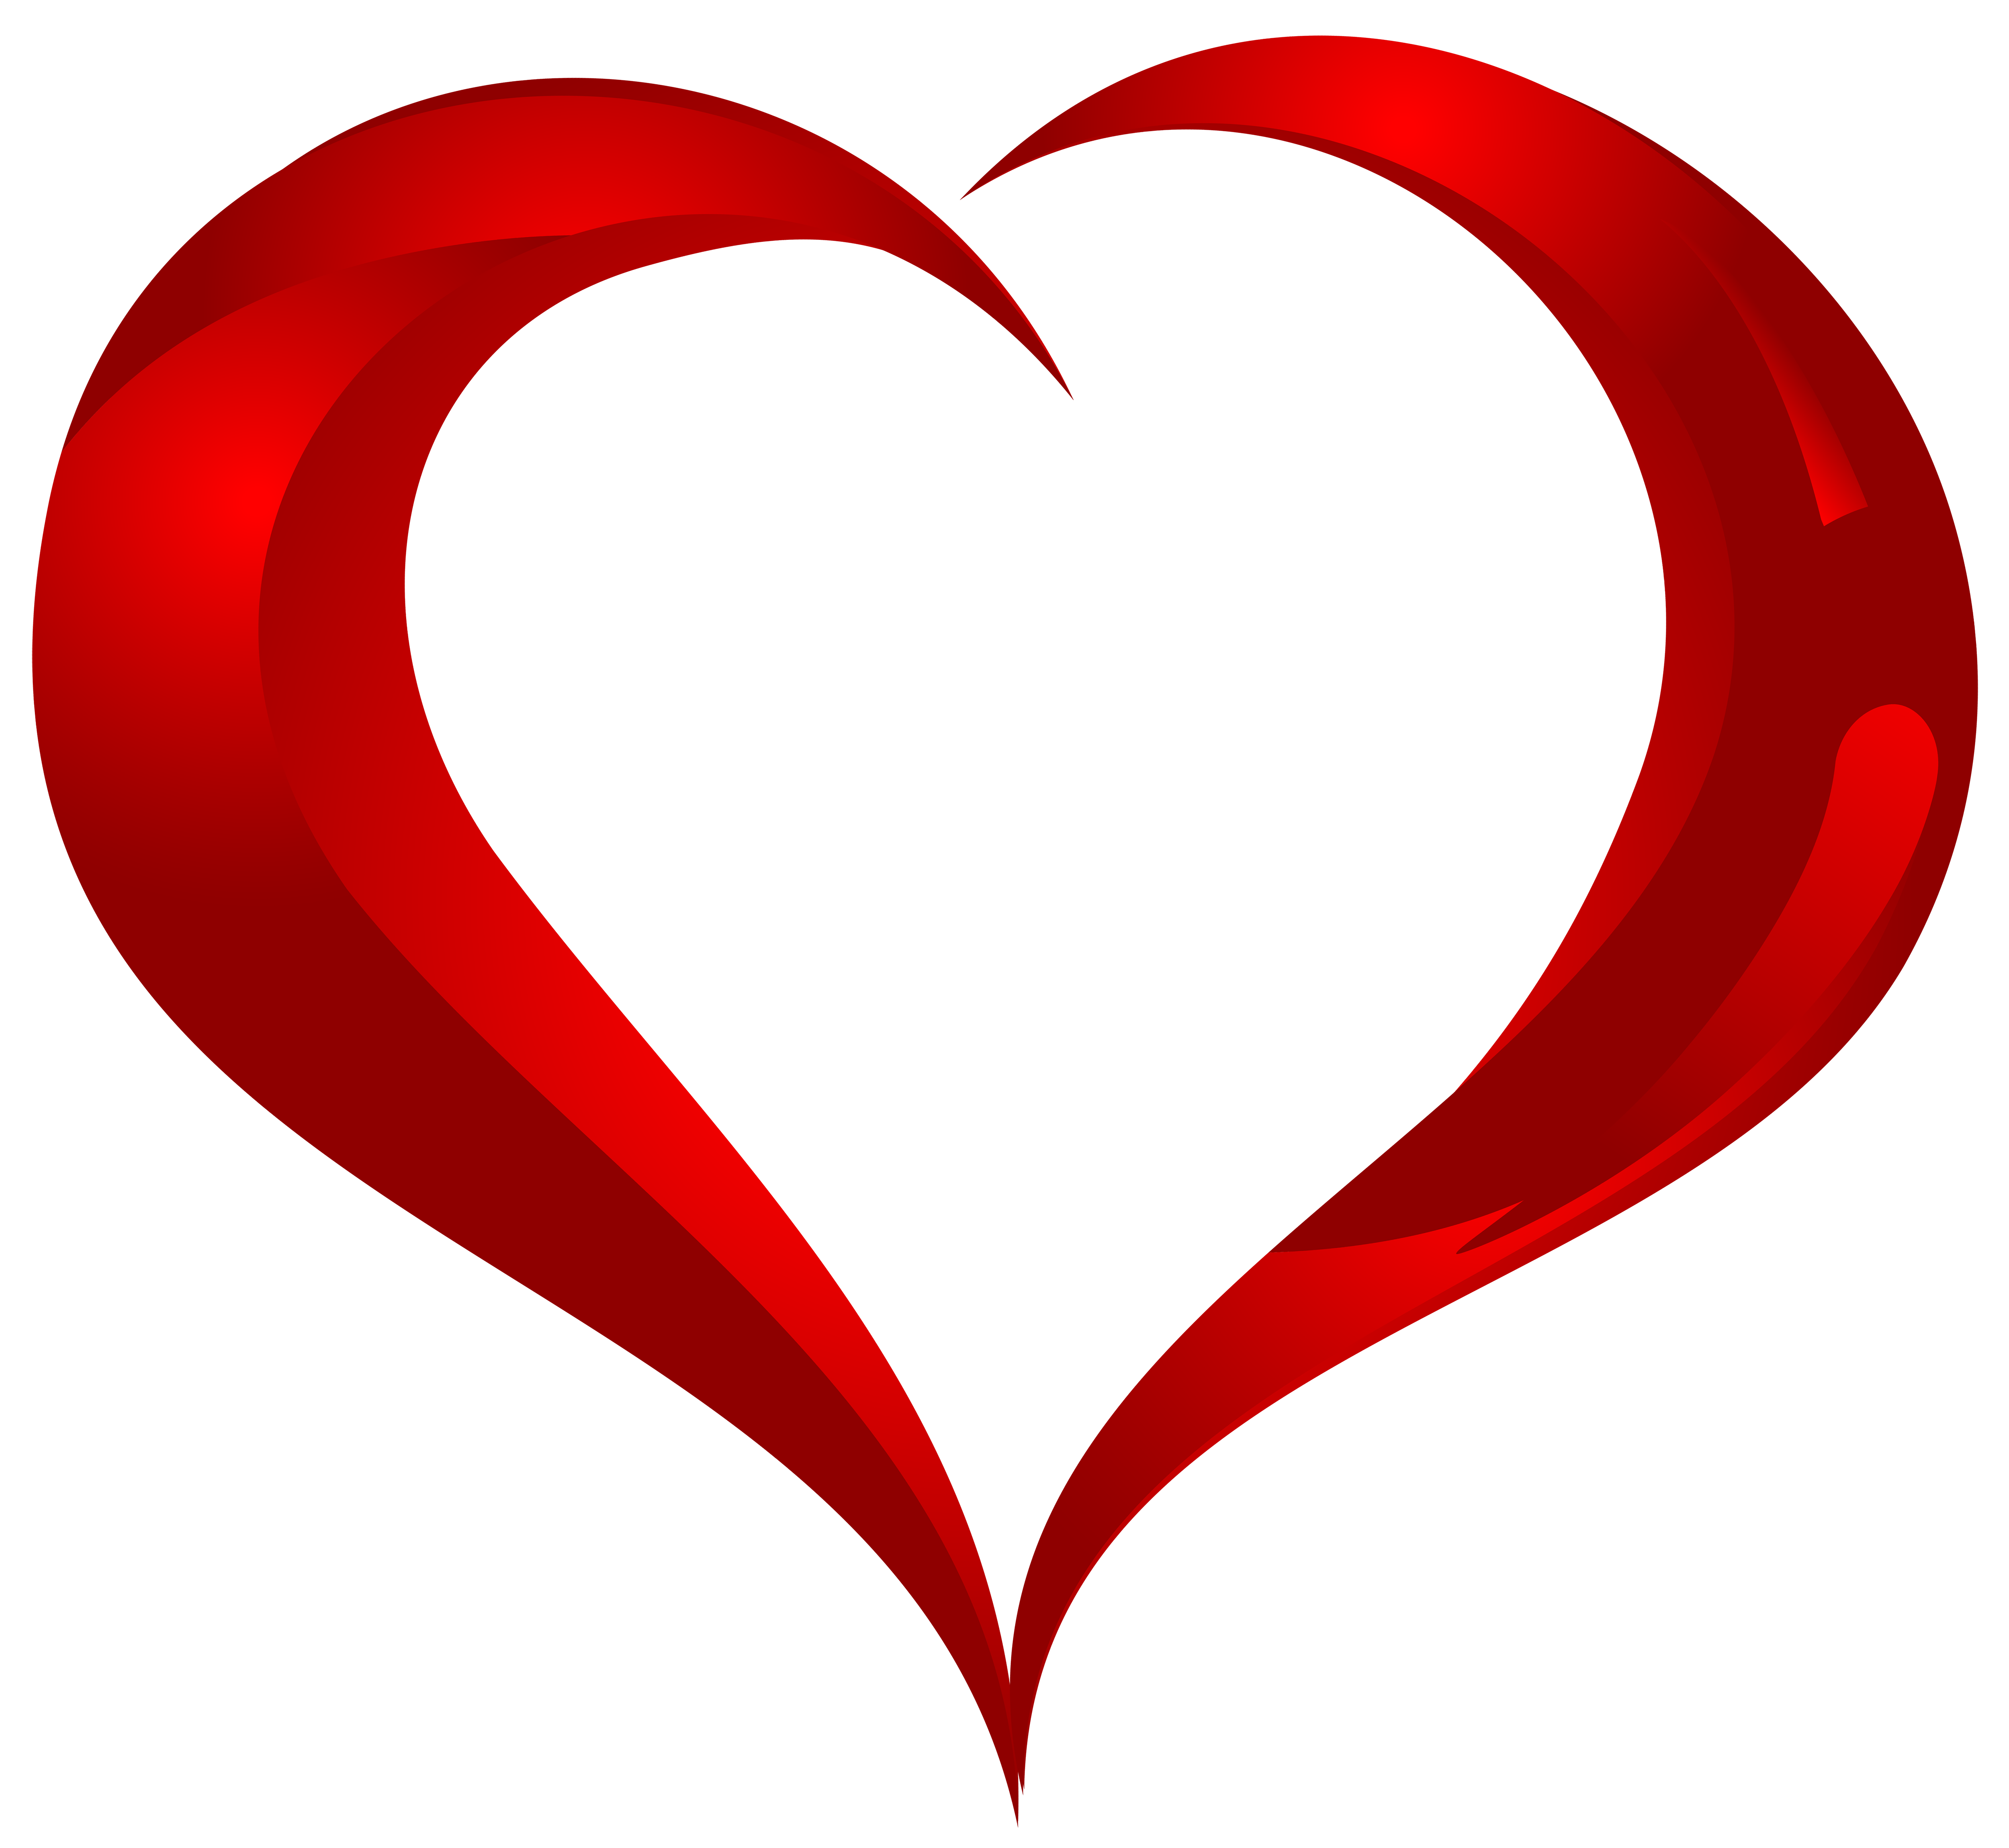 Heart Clipart Png